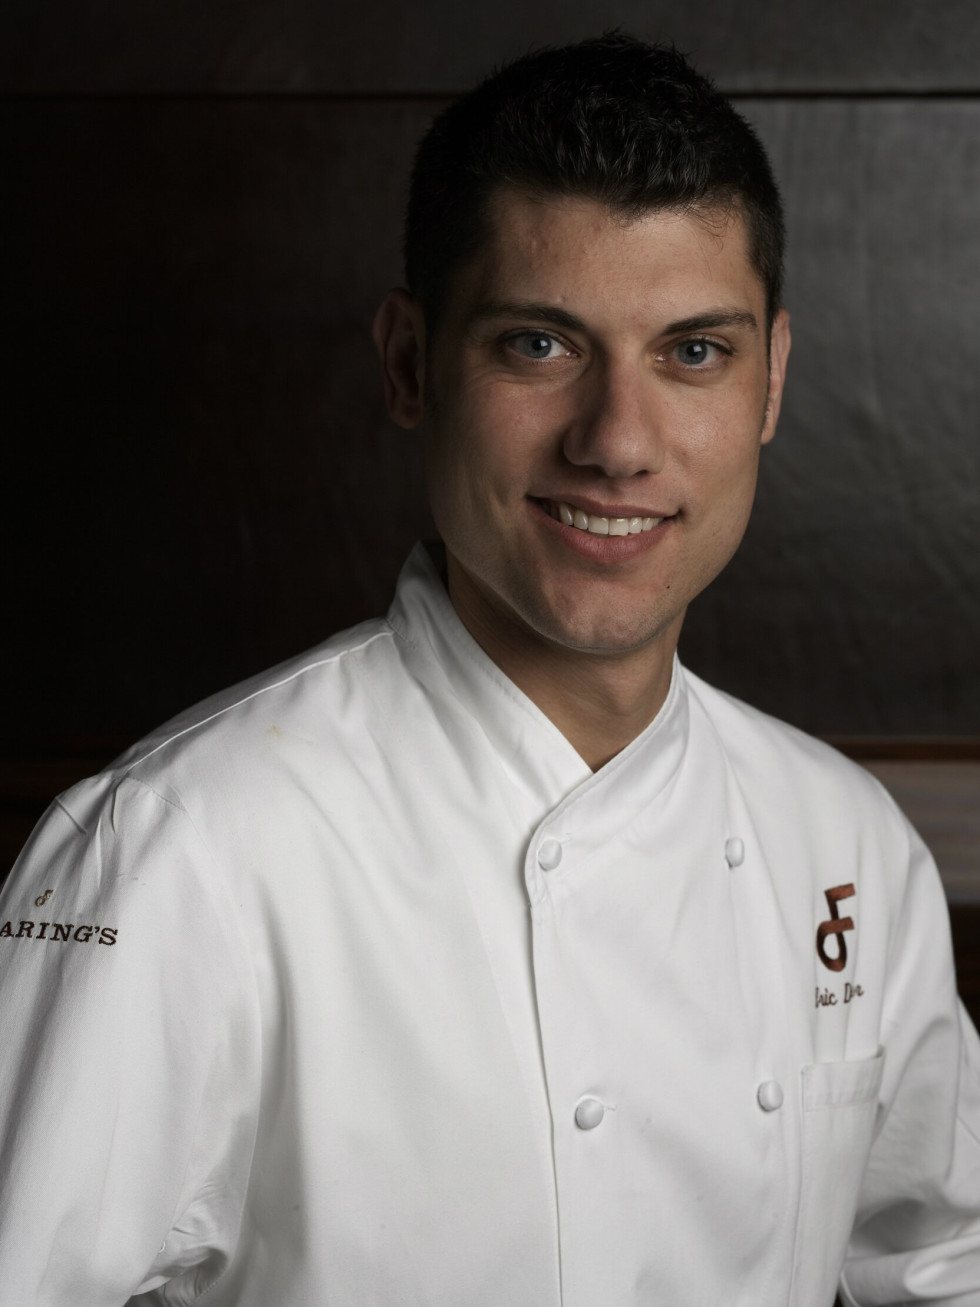 Chef Eric Dreyer Fearing's